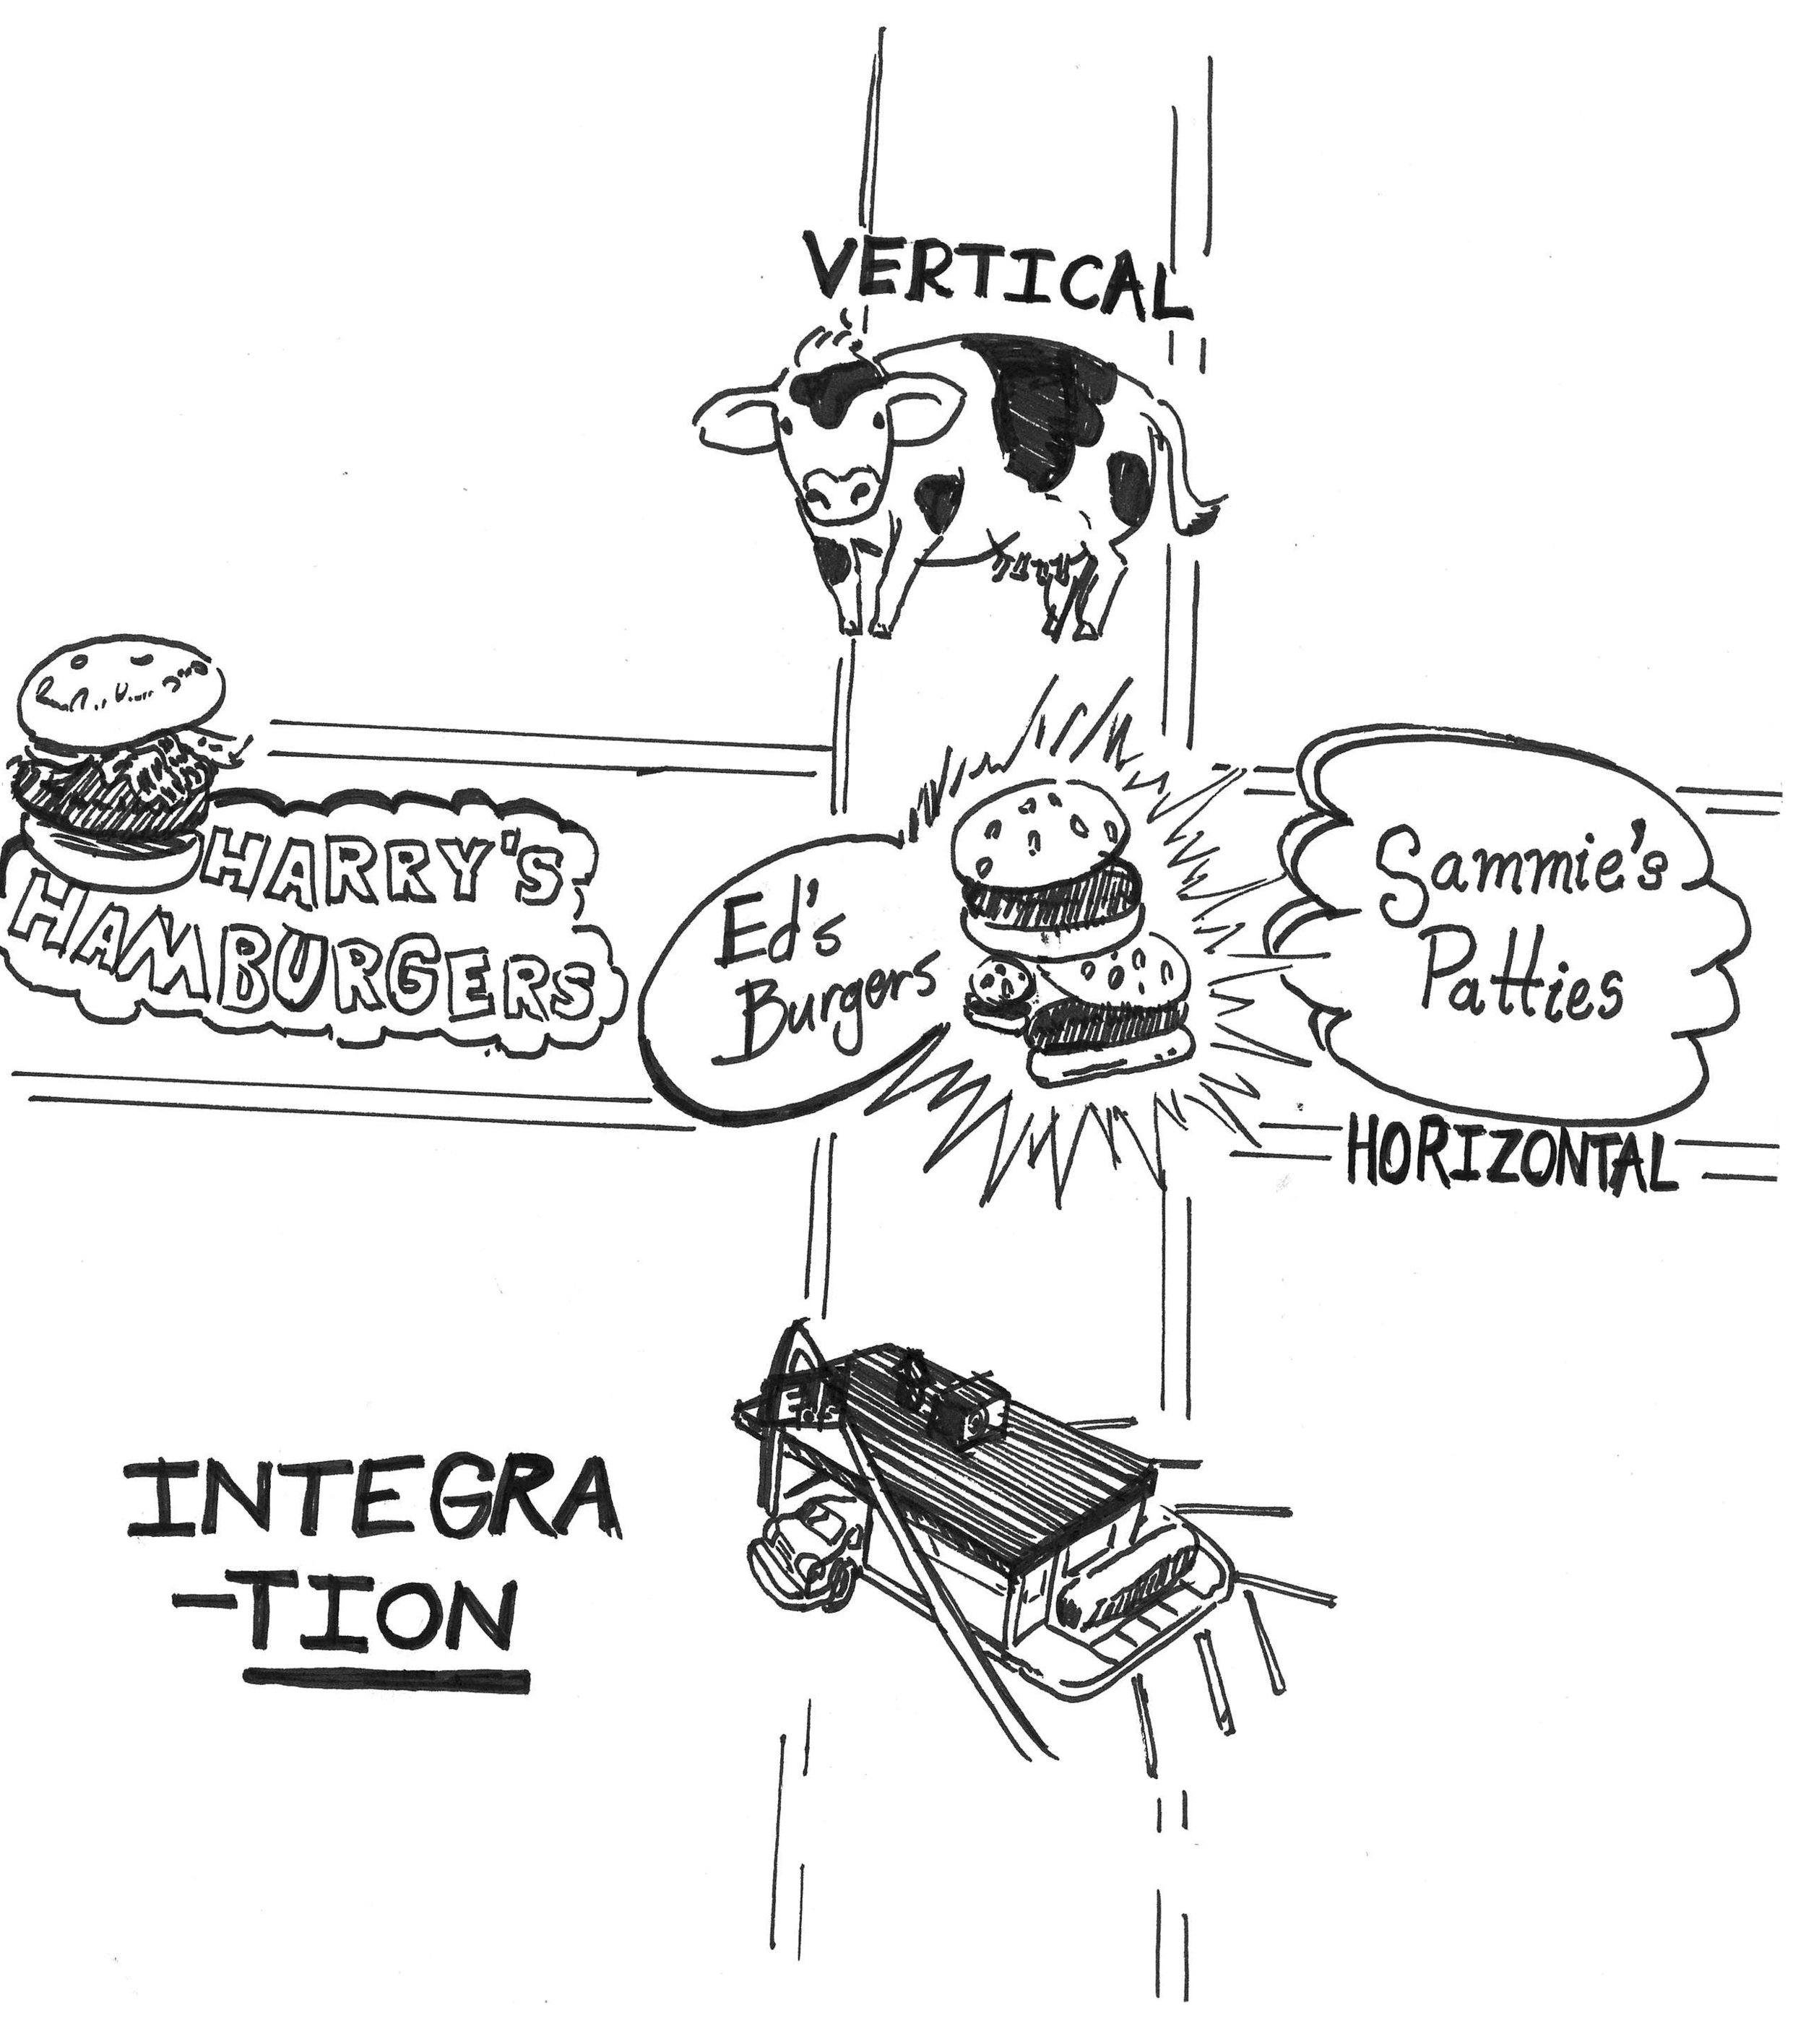 """""""Vertical and horizontal integration,"""" as illustrated by hamburgers."""